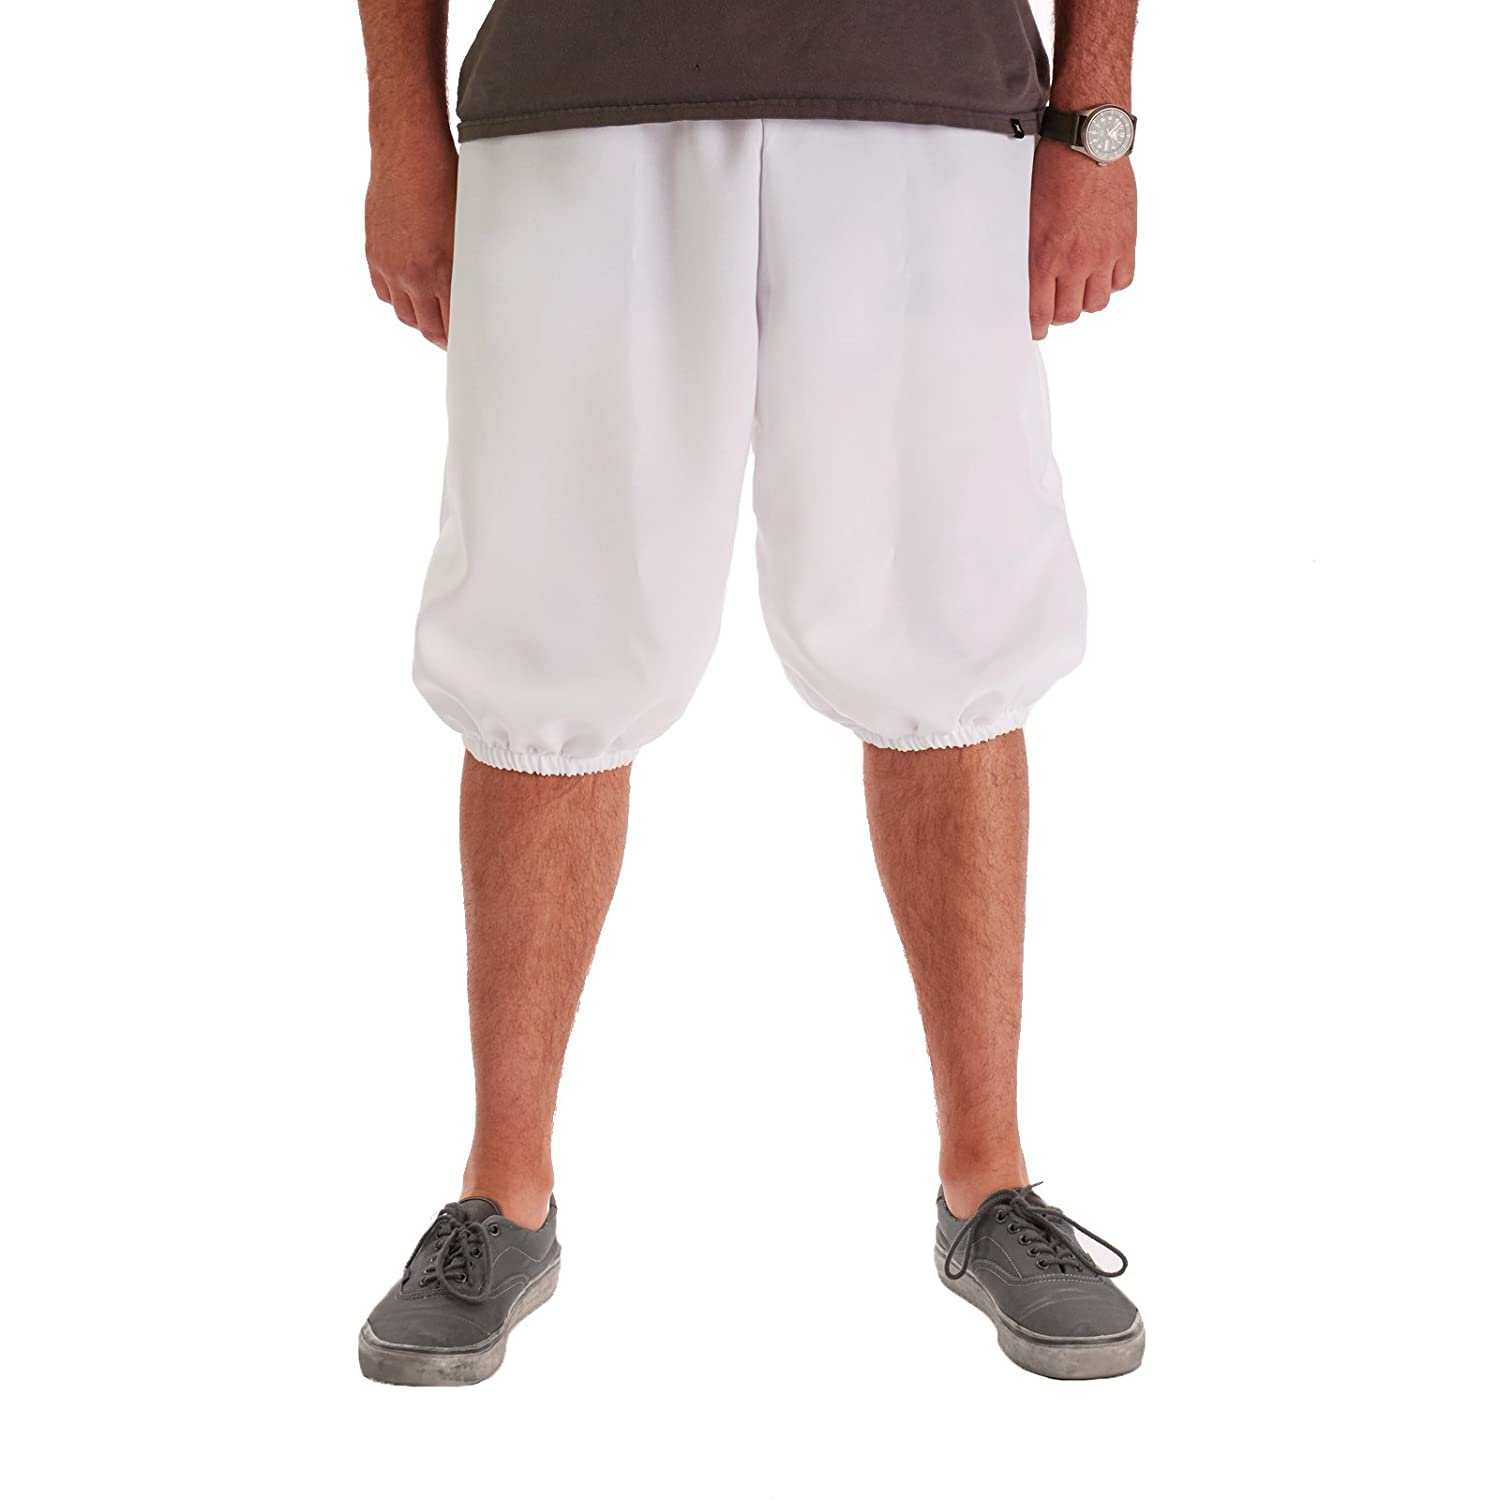 Largemouth Men's Knicker Pants White knickerwhite